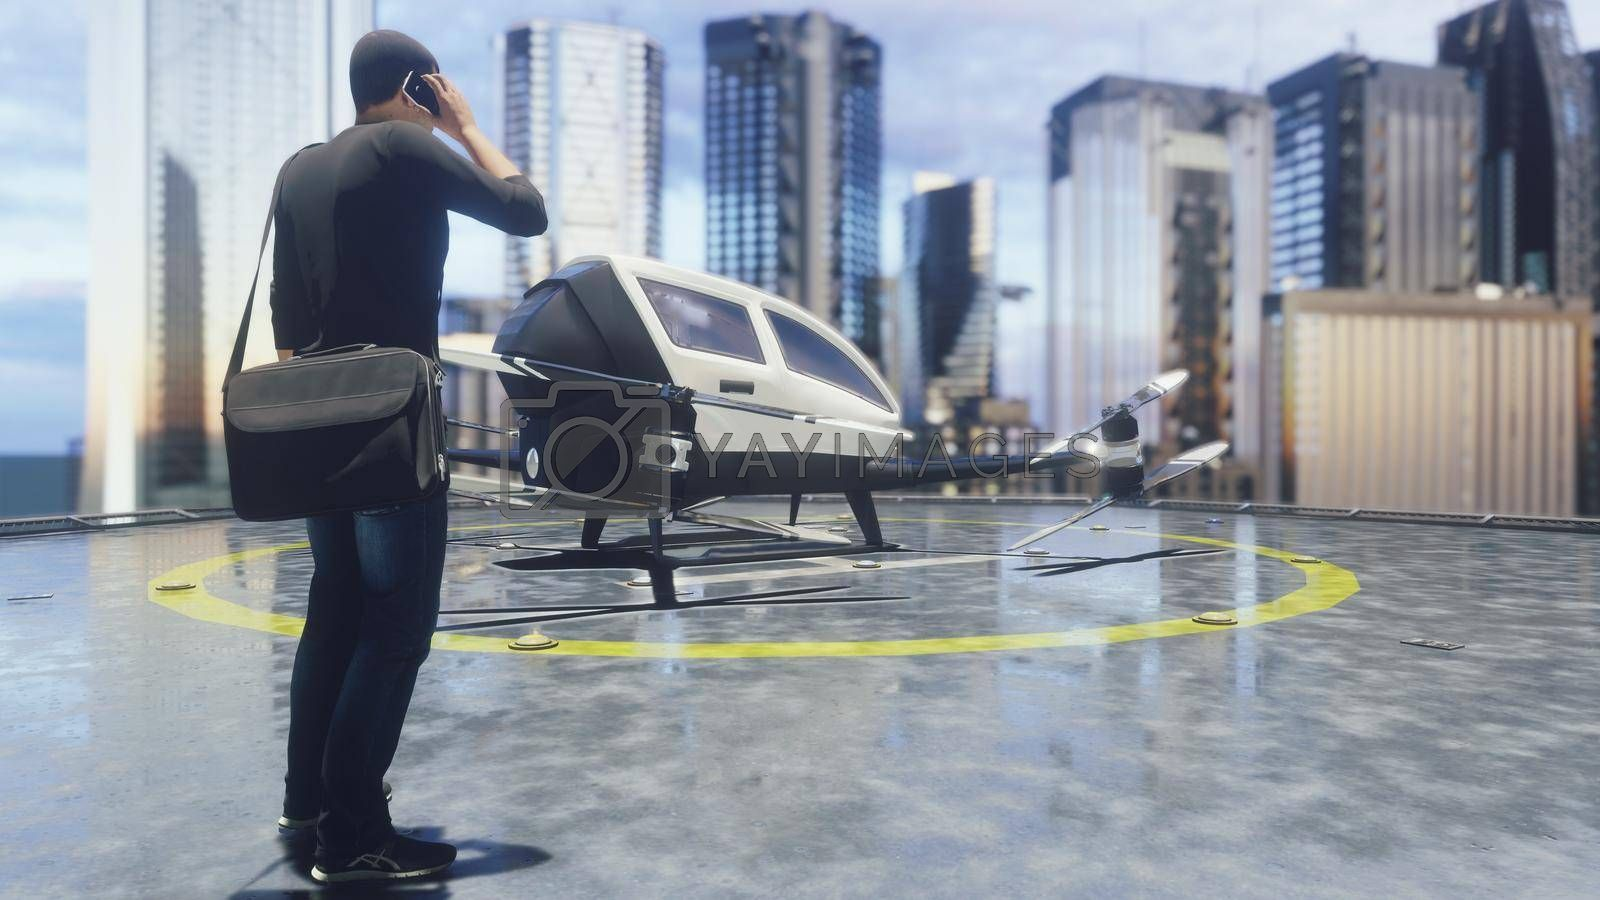 A unmanned passenger drone is preparing for takeoff.